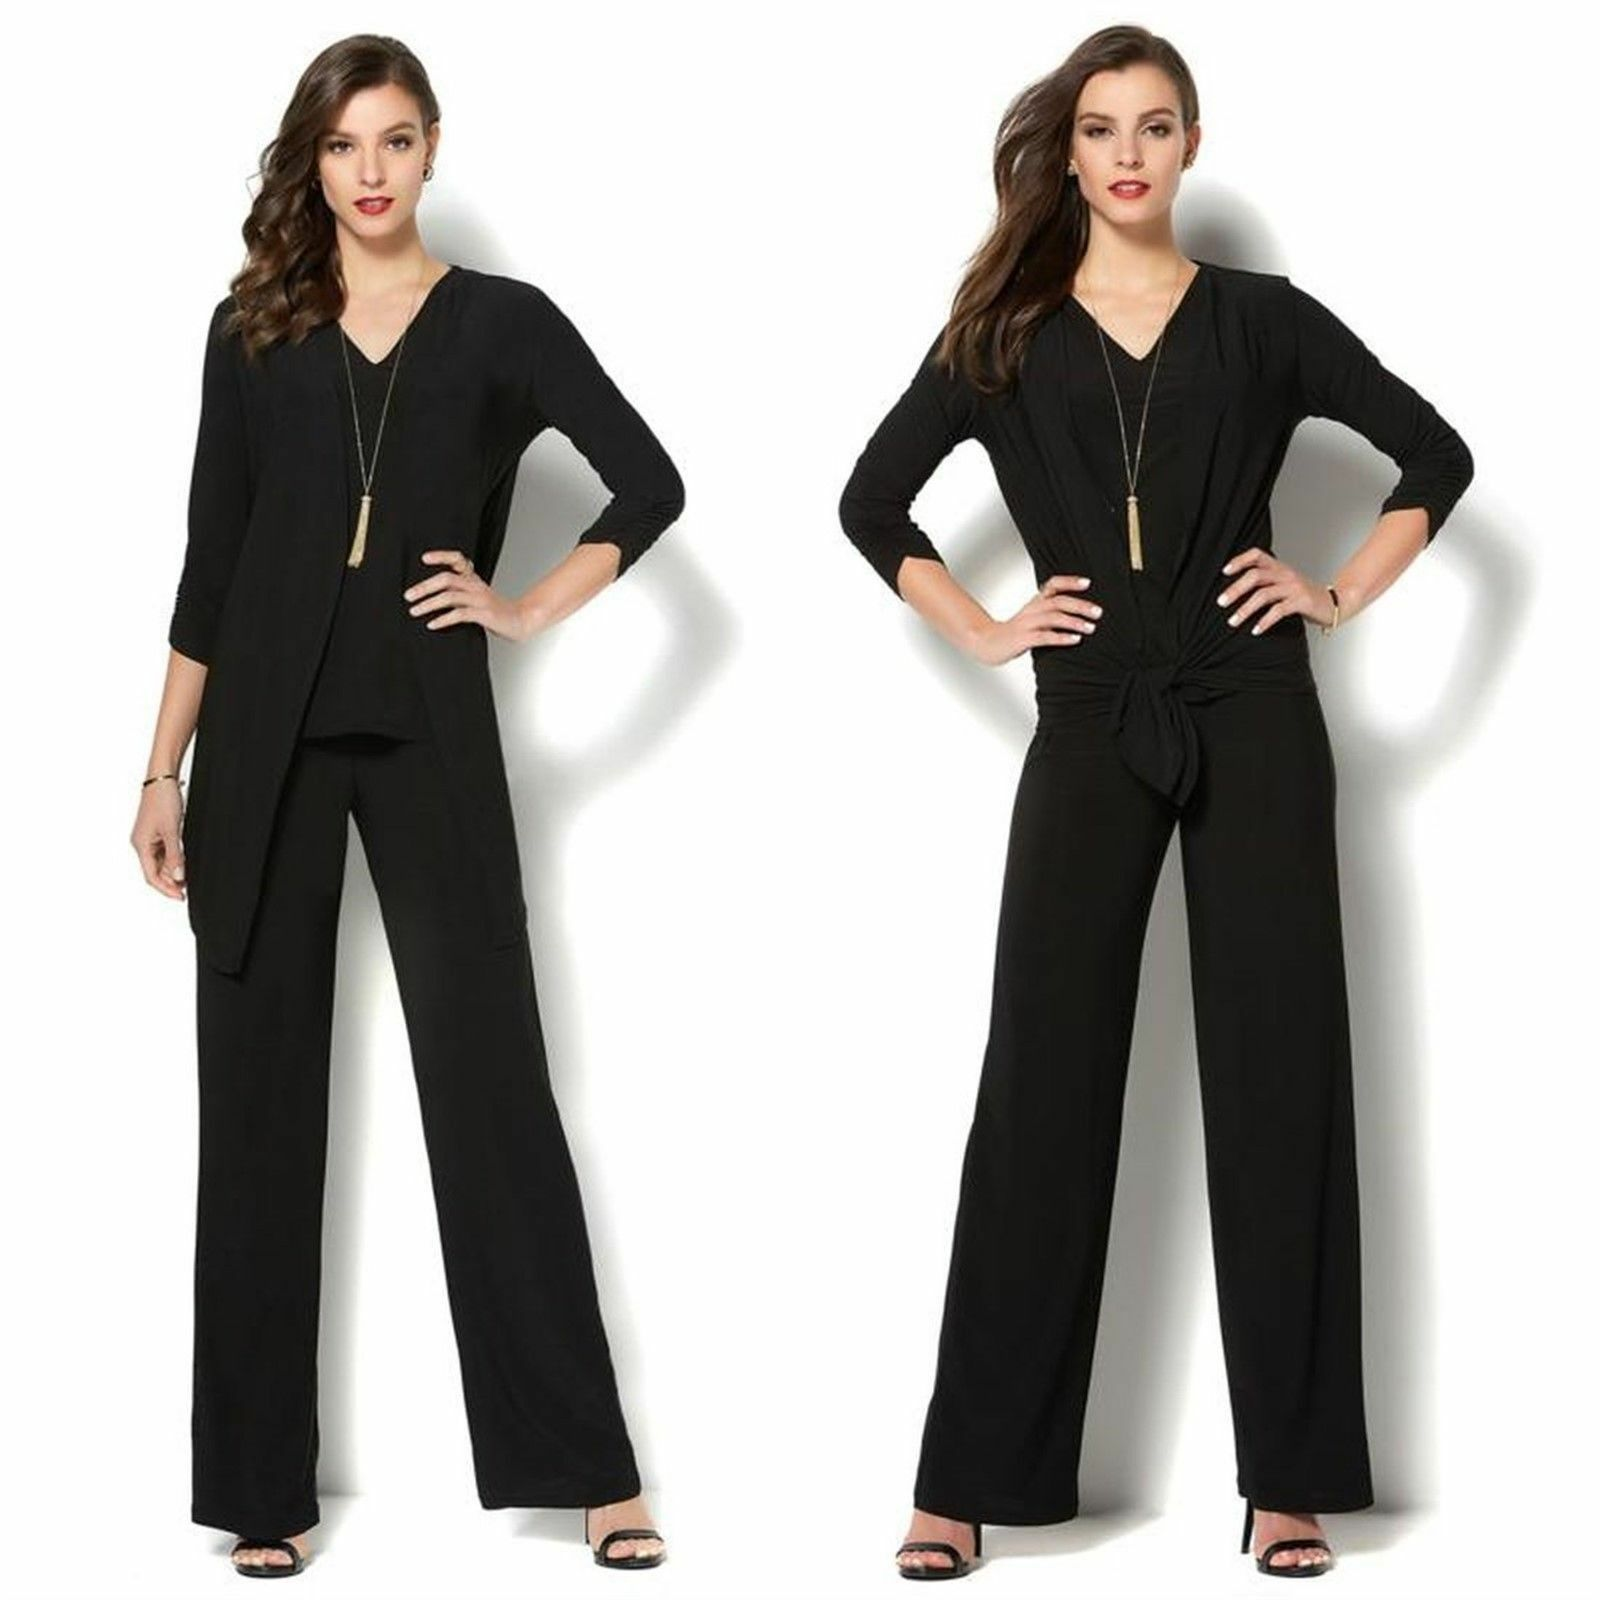 IMAN Global Chic Luxe 3-Pc Perfect Party Pant Ensemble EMERALD L Avg NEW 579-000